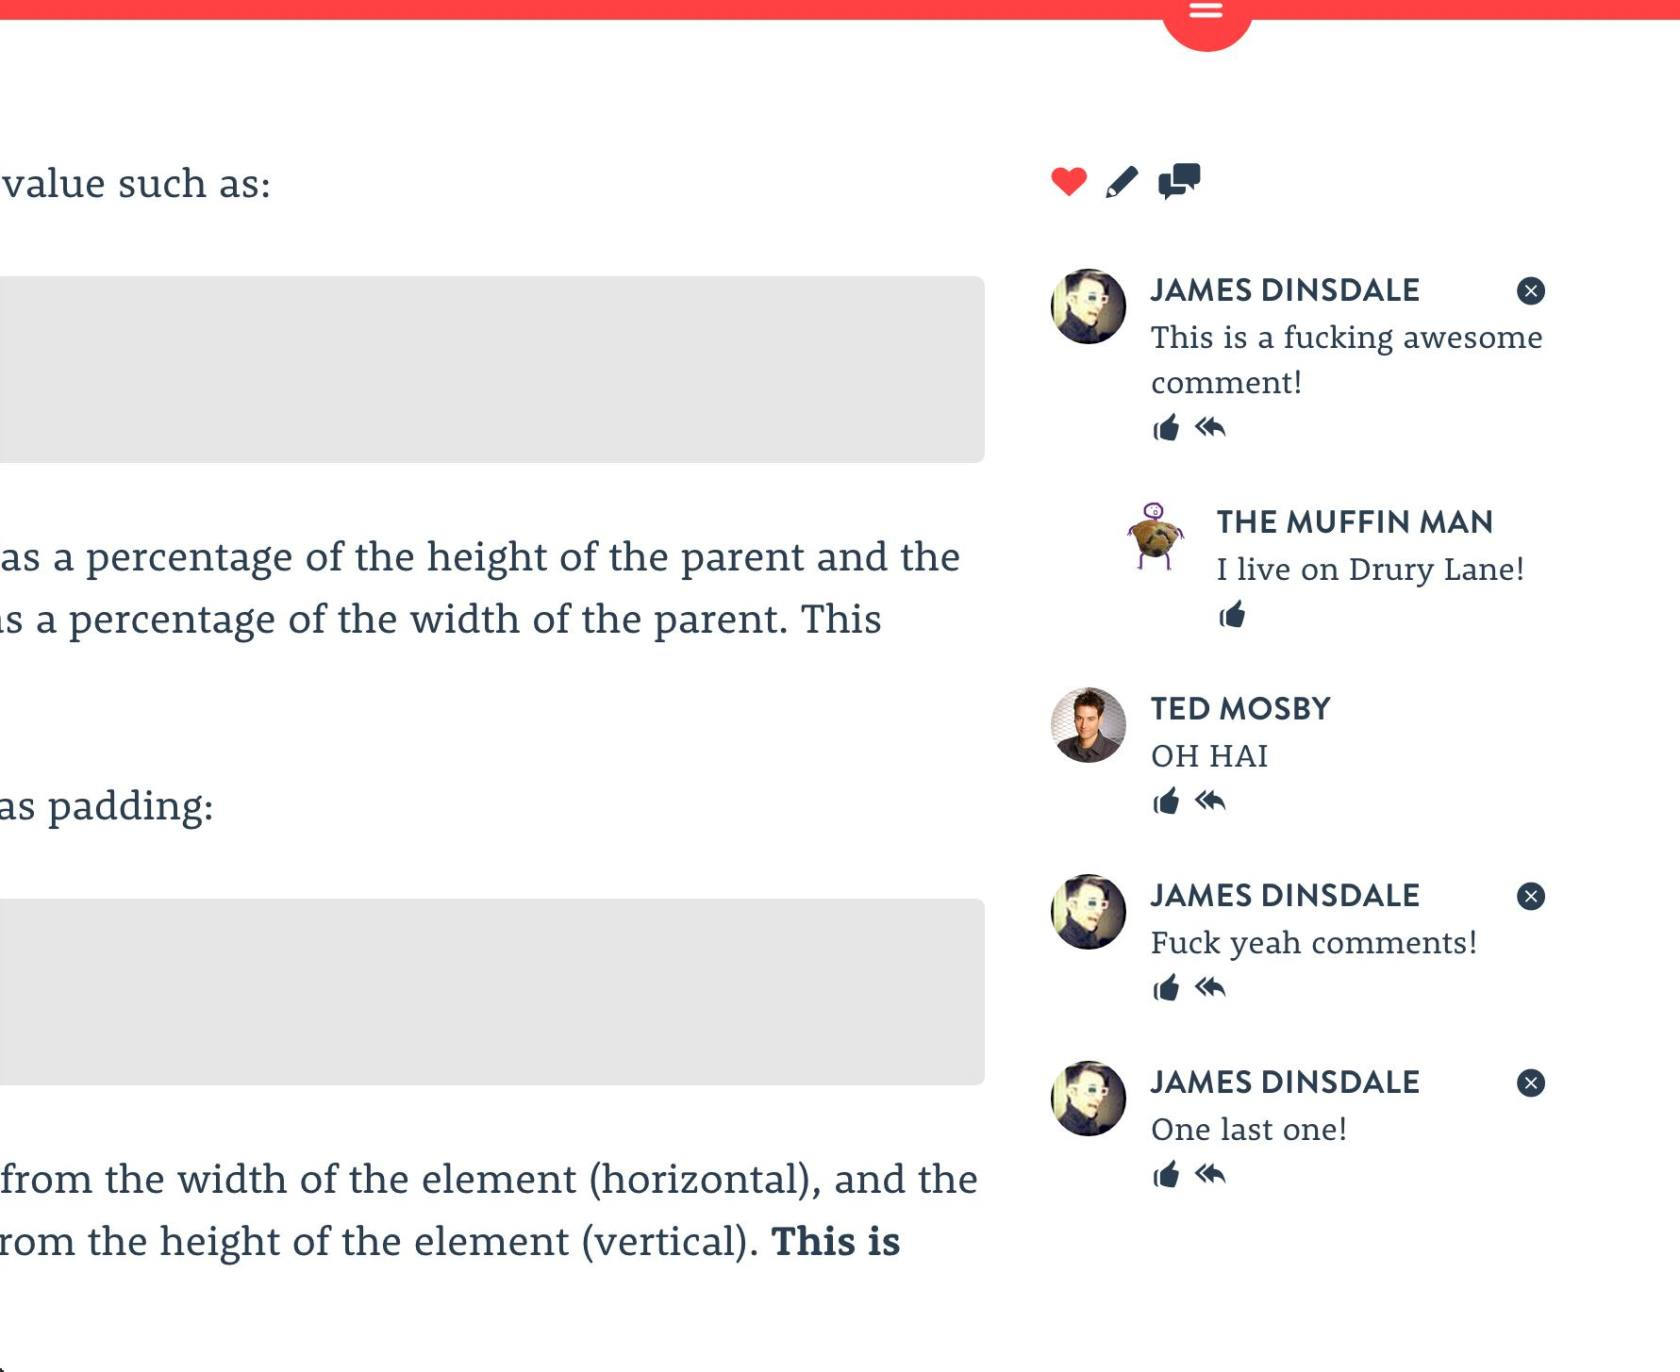 A screenshot of the commenting service Chatter, which I launched in 2013, appearing on an older version of this blog.